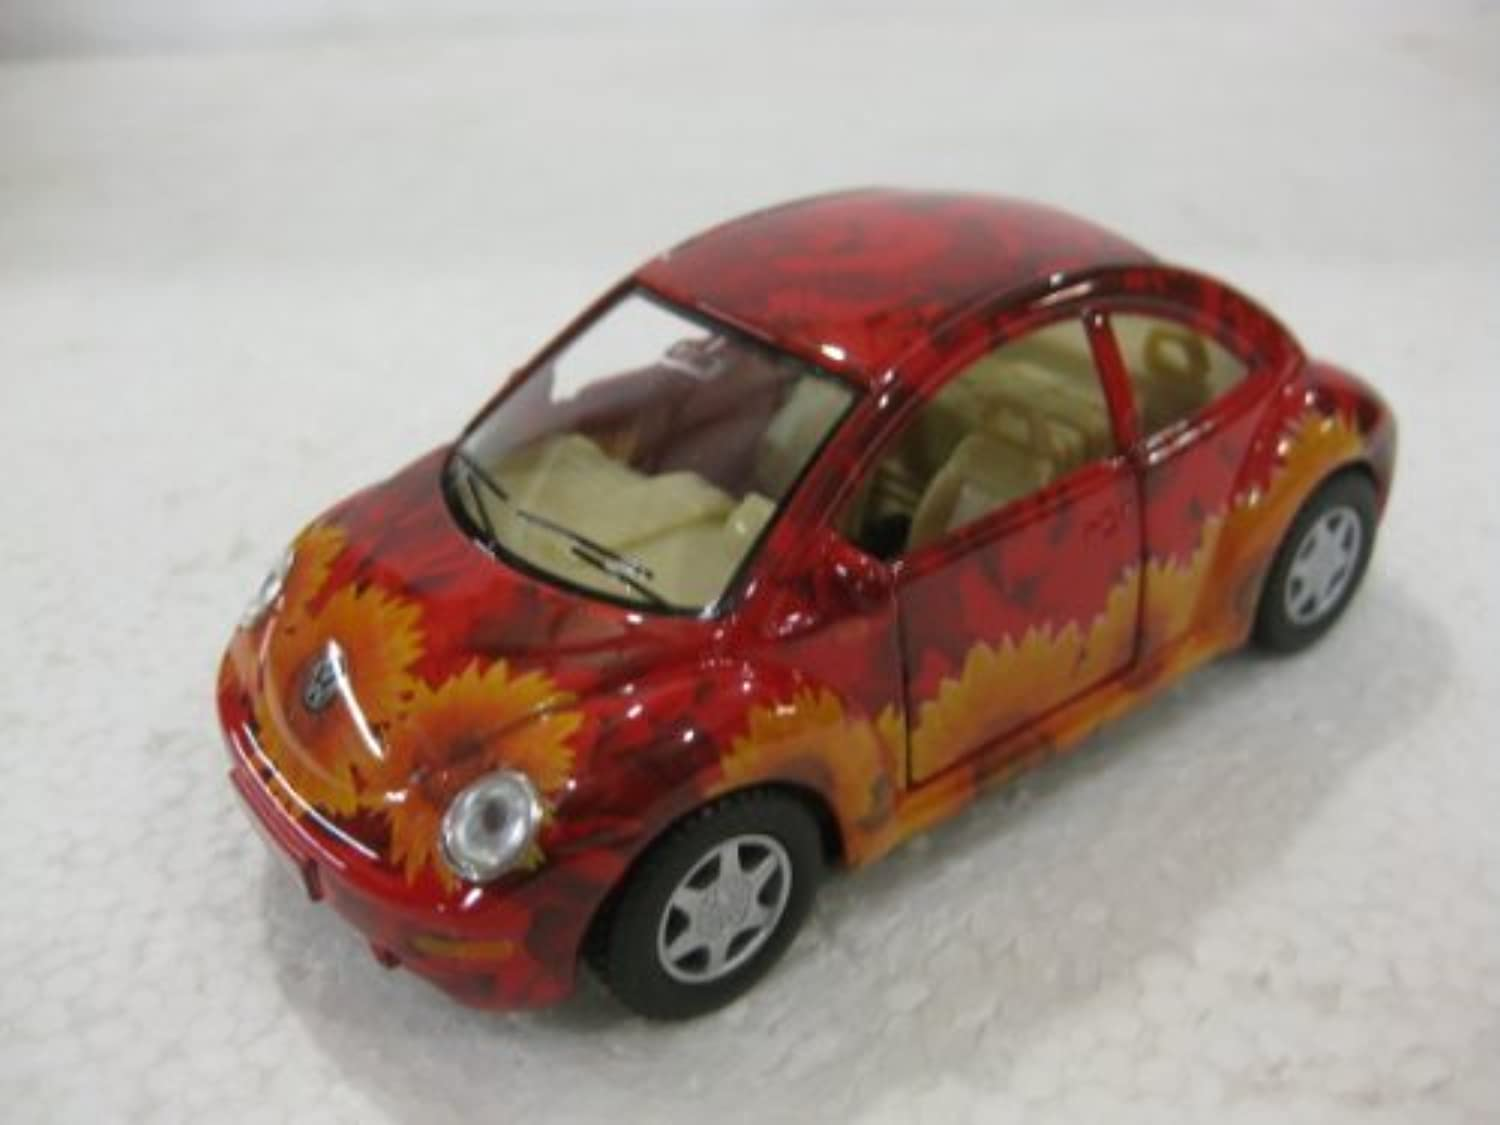 Volkswagon New Beetle In Flower Print Diecast 1 32 Scale By Kinsmart by diecast 1 32 scale